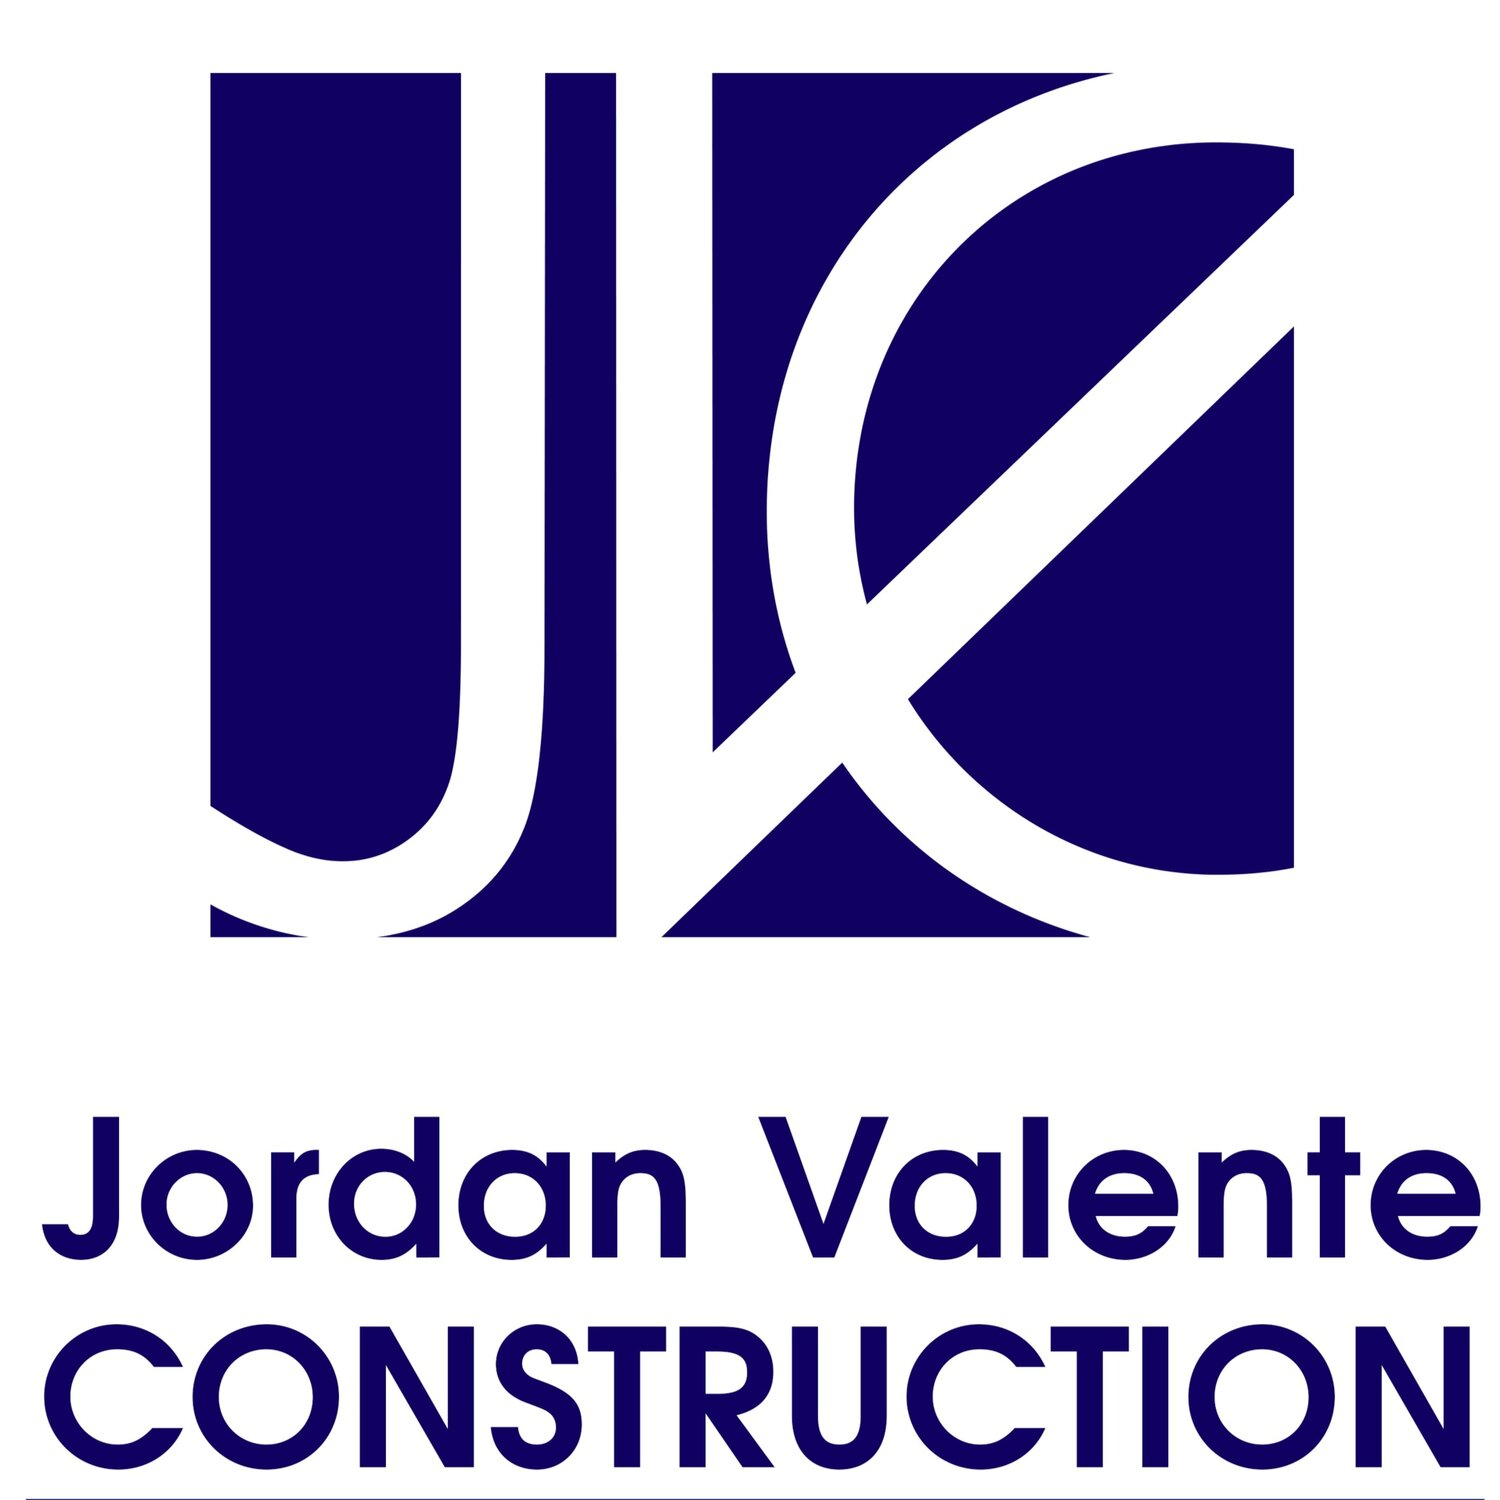 Jordan Valente Construction